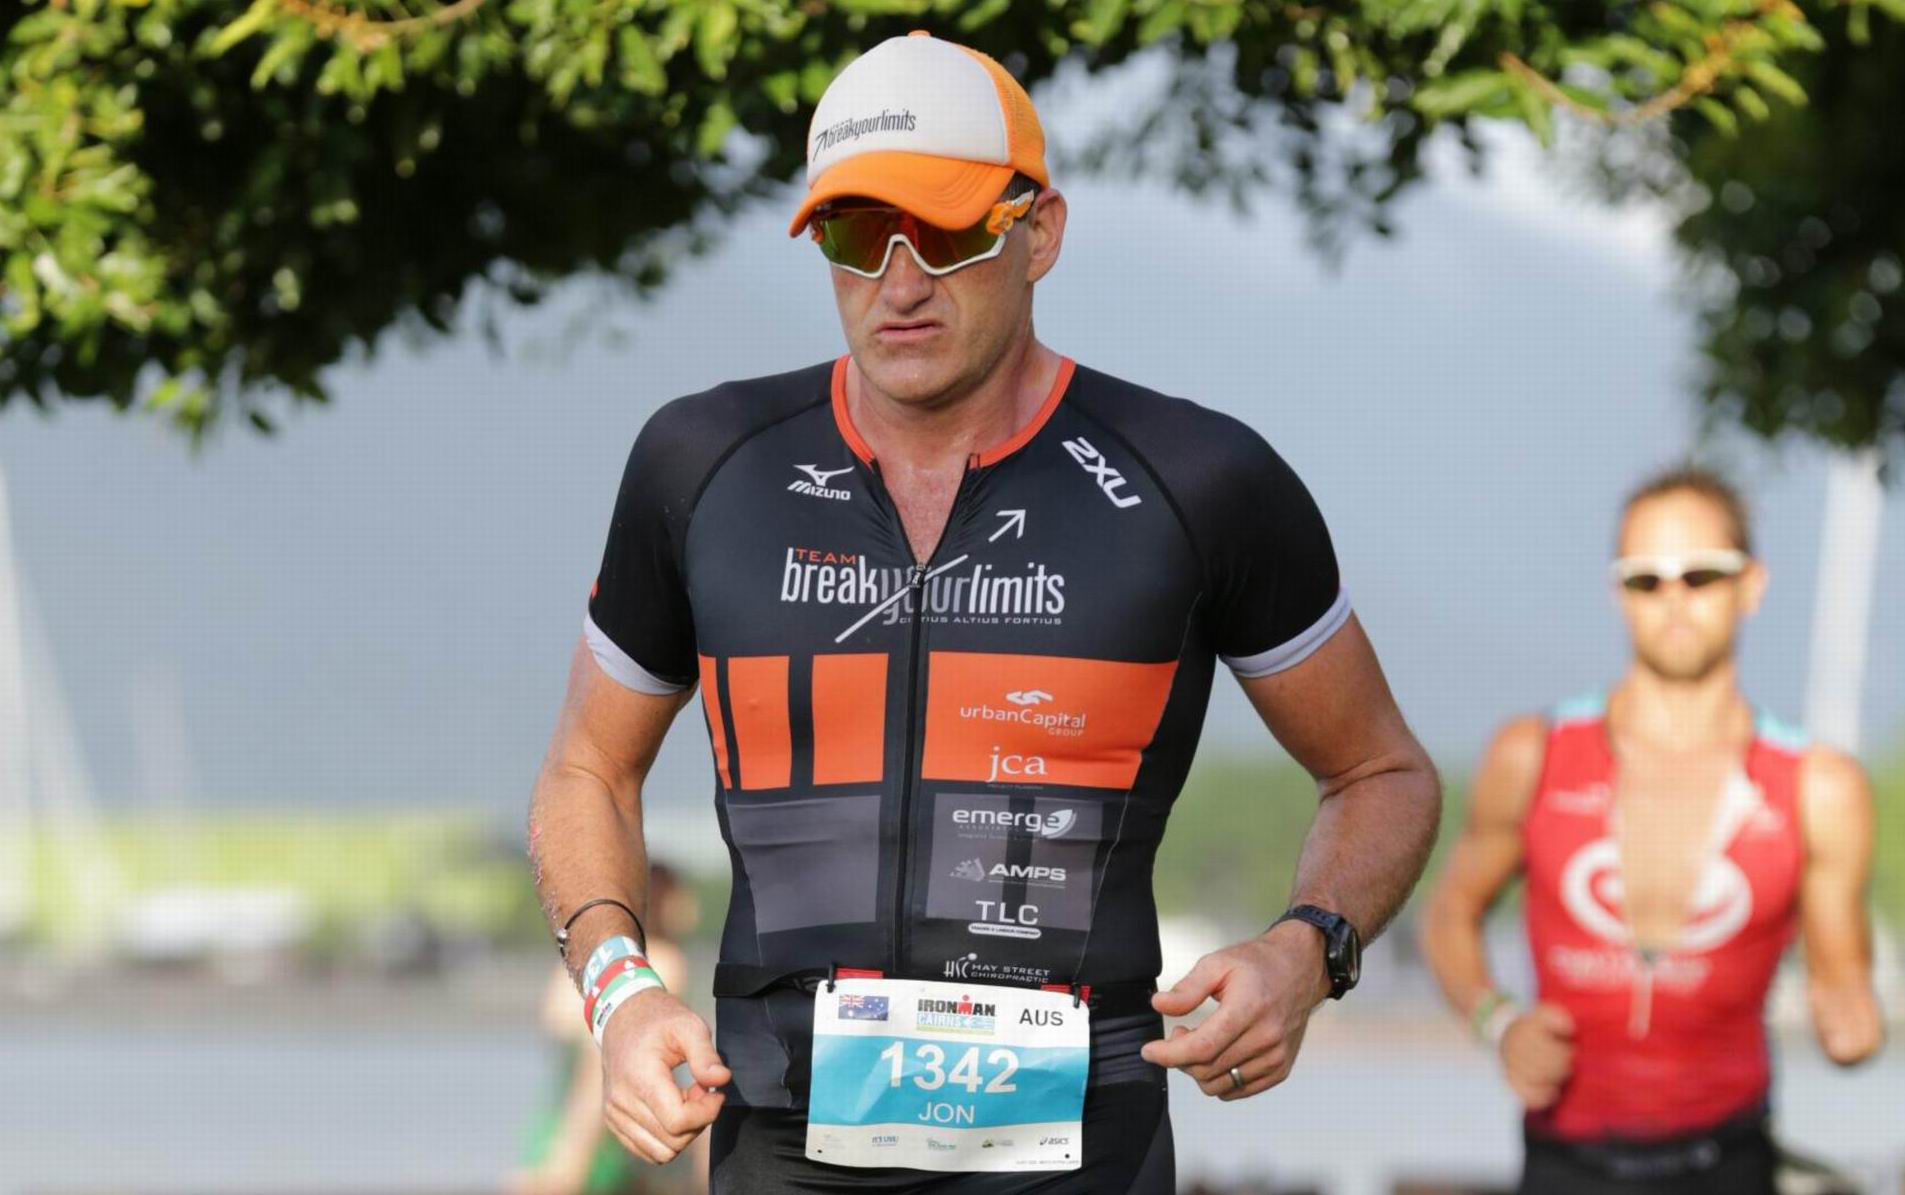 Swanbourne triathlete to compete in Ironman 70.3 World Championship in Queensland